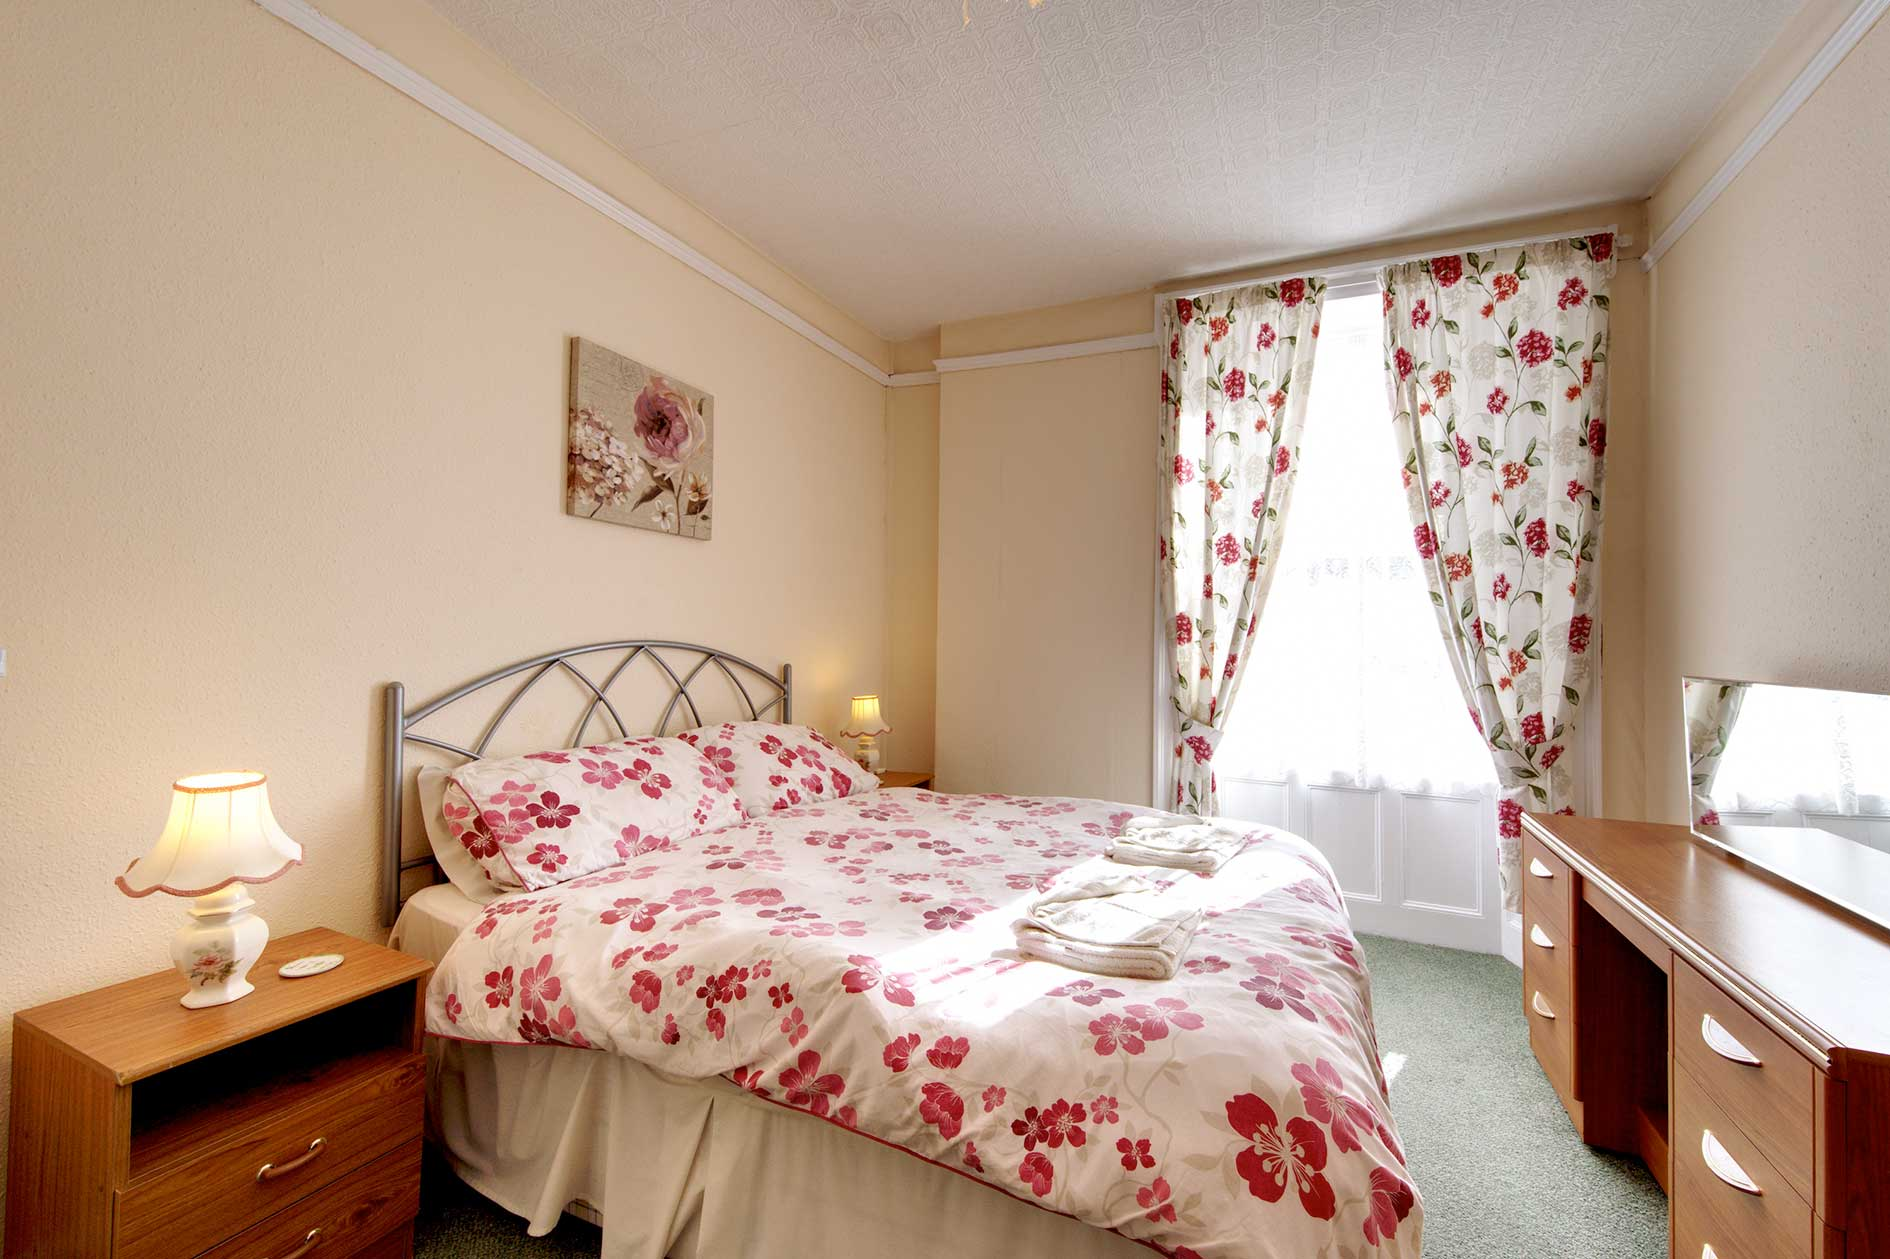 Light Bedroom With Double Bed With Red Flower Covers And Wooden Furniture